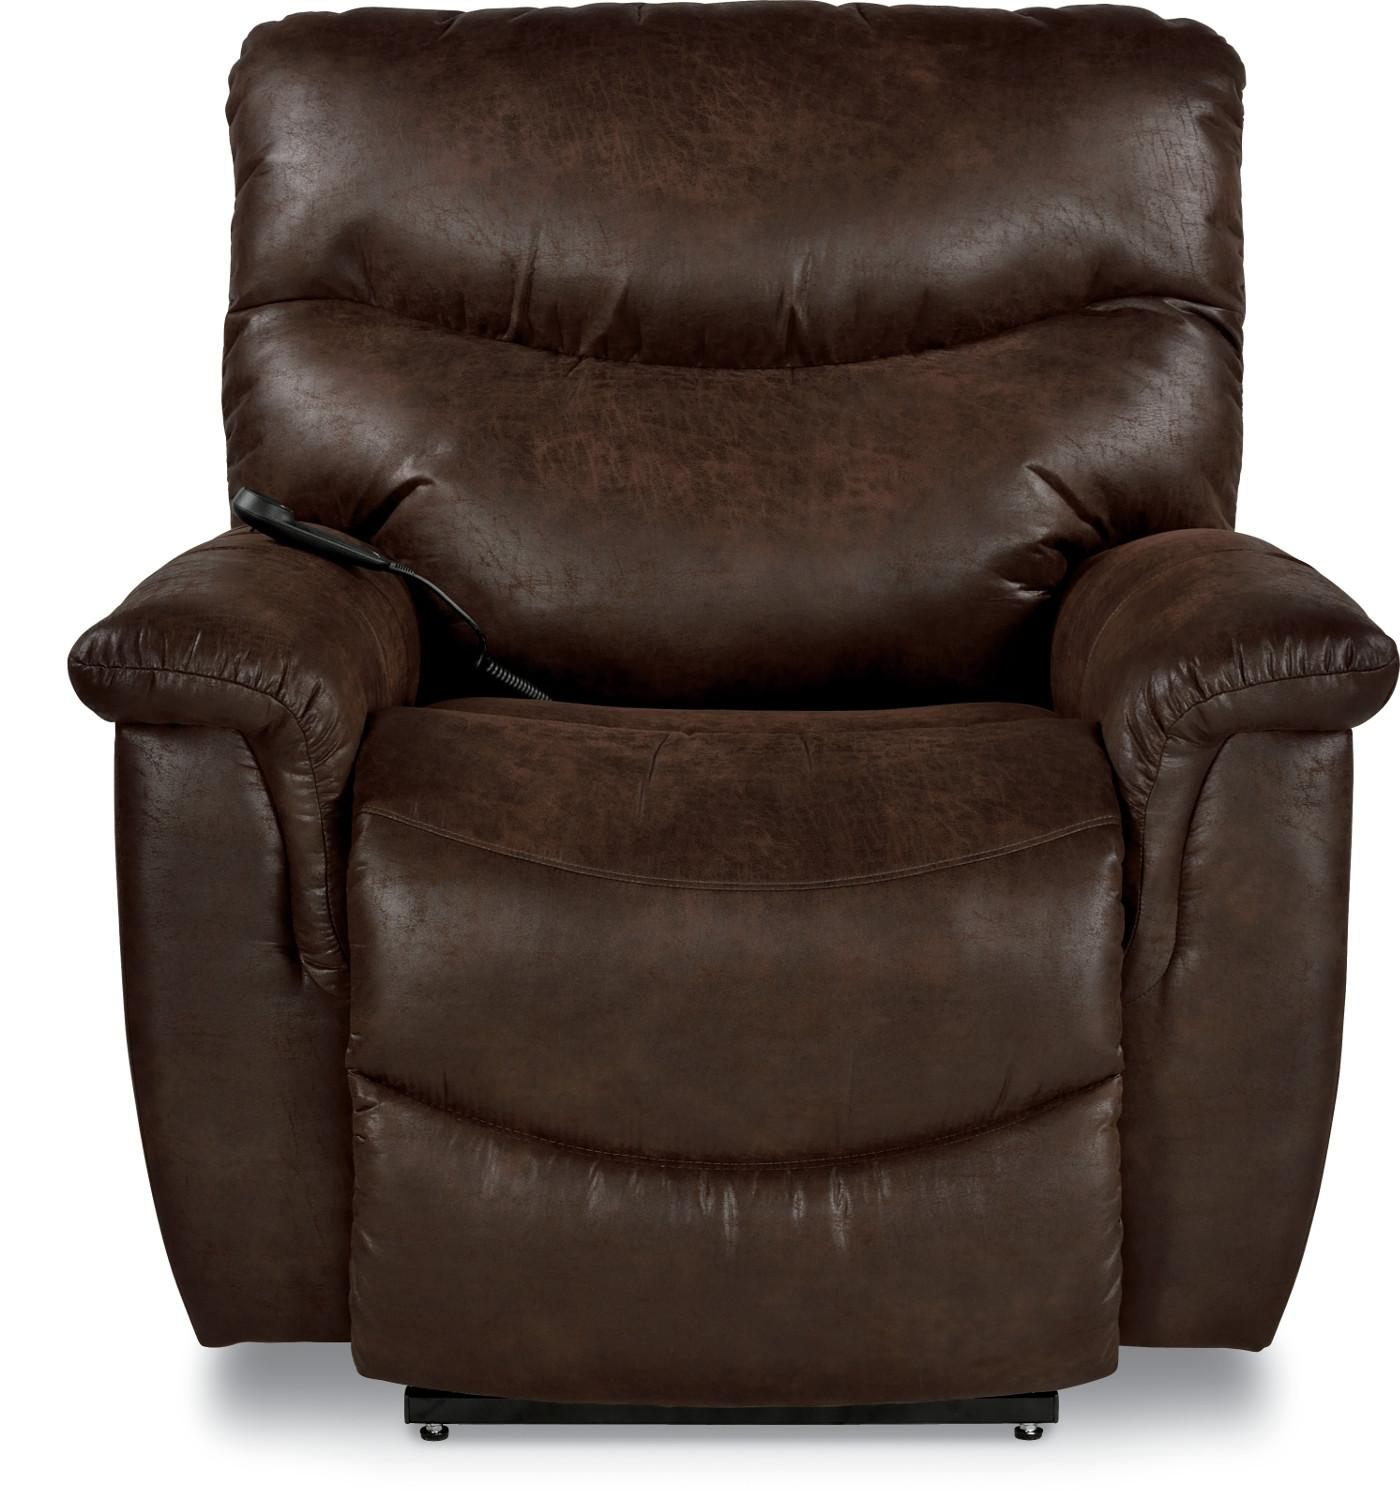 La Z Boy 10 512 Pinnacle Leather Rocker Recliner likewise Lazy Boy Electric Recliner Troubleshooting together with Lazy Boy Power Recliners Of Astor Reclina Way Recliner moreover Iteminformation furthermore Concept Lazy Boy Recliner Sofa. on la z boy power recliner